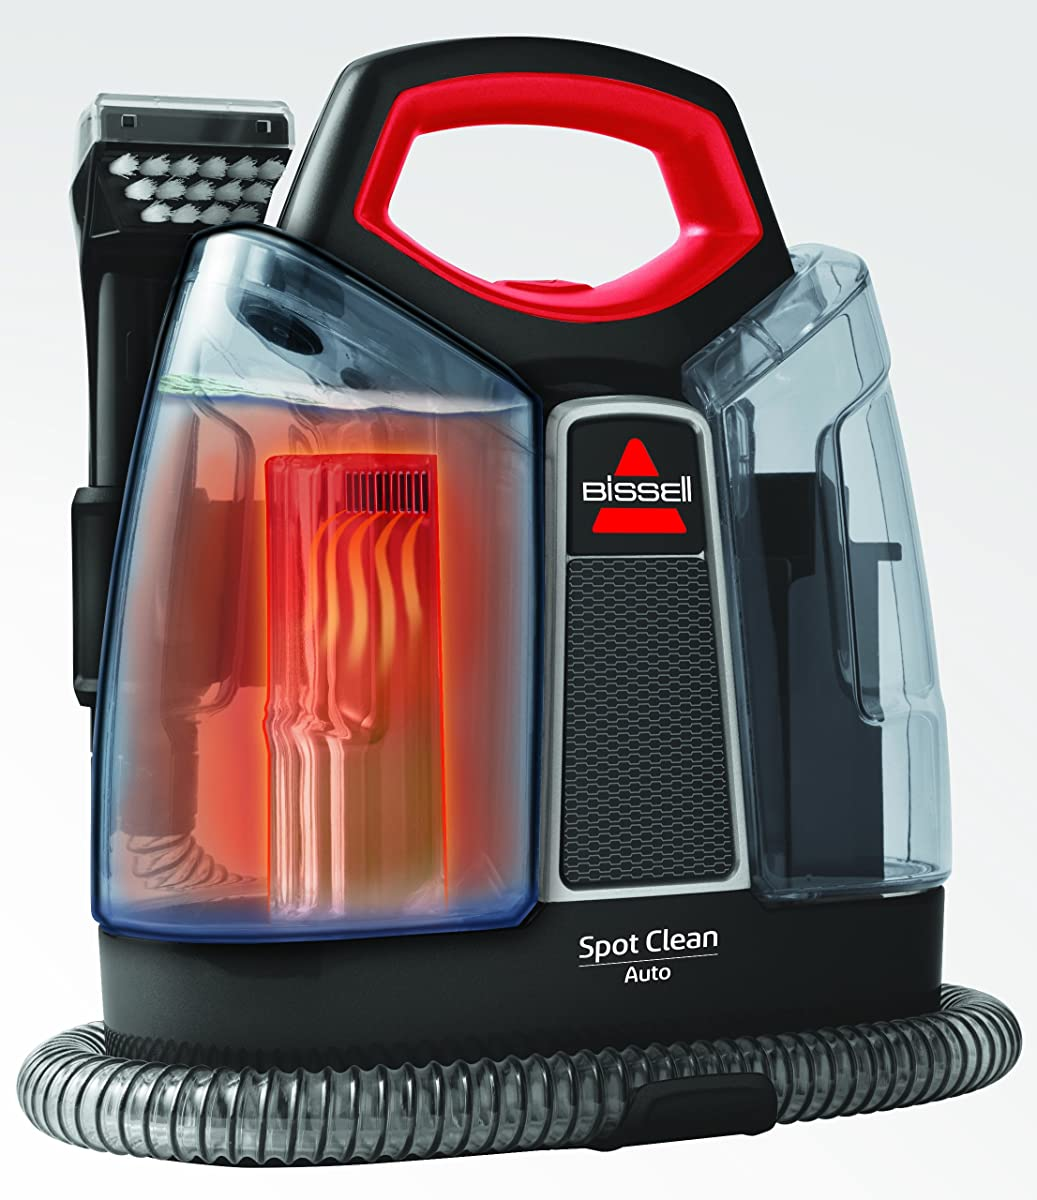 BISSELL SpotClean Auto Portable Cleaner For Carpet & Cars